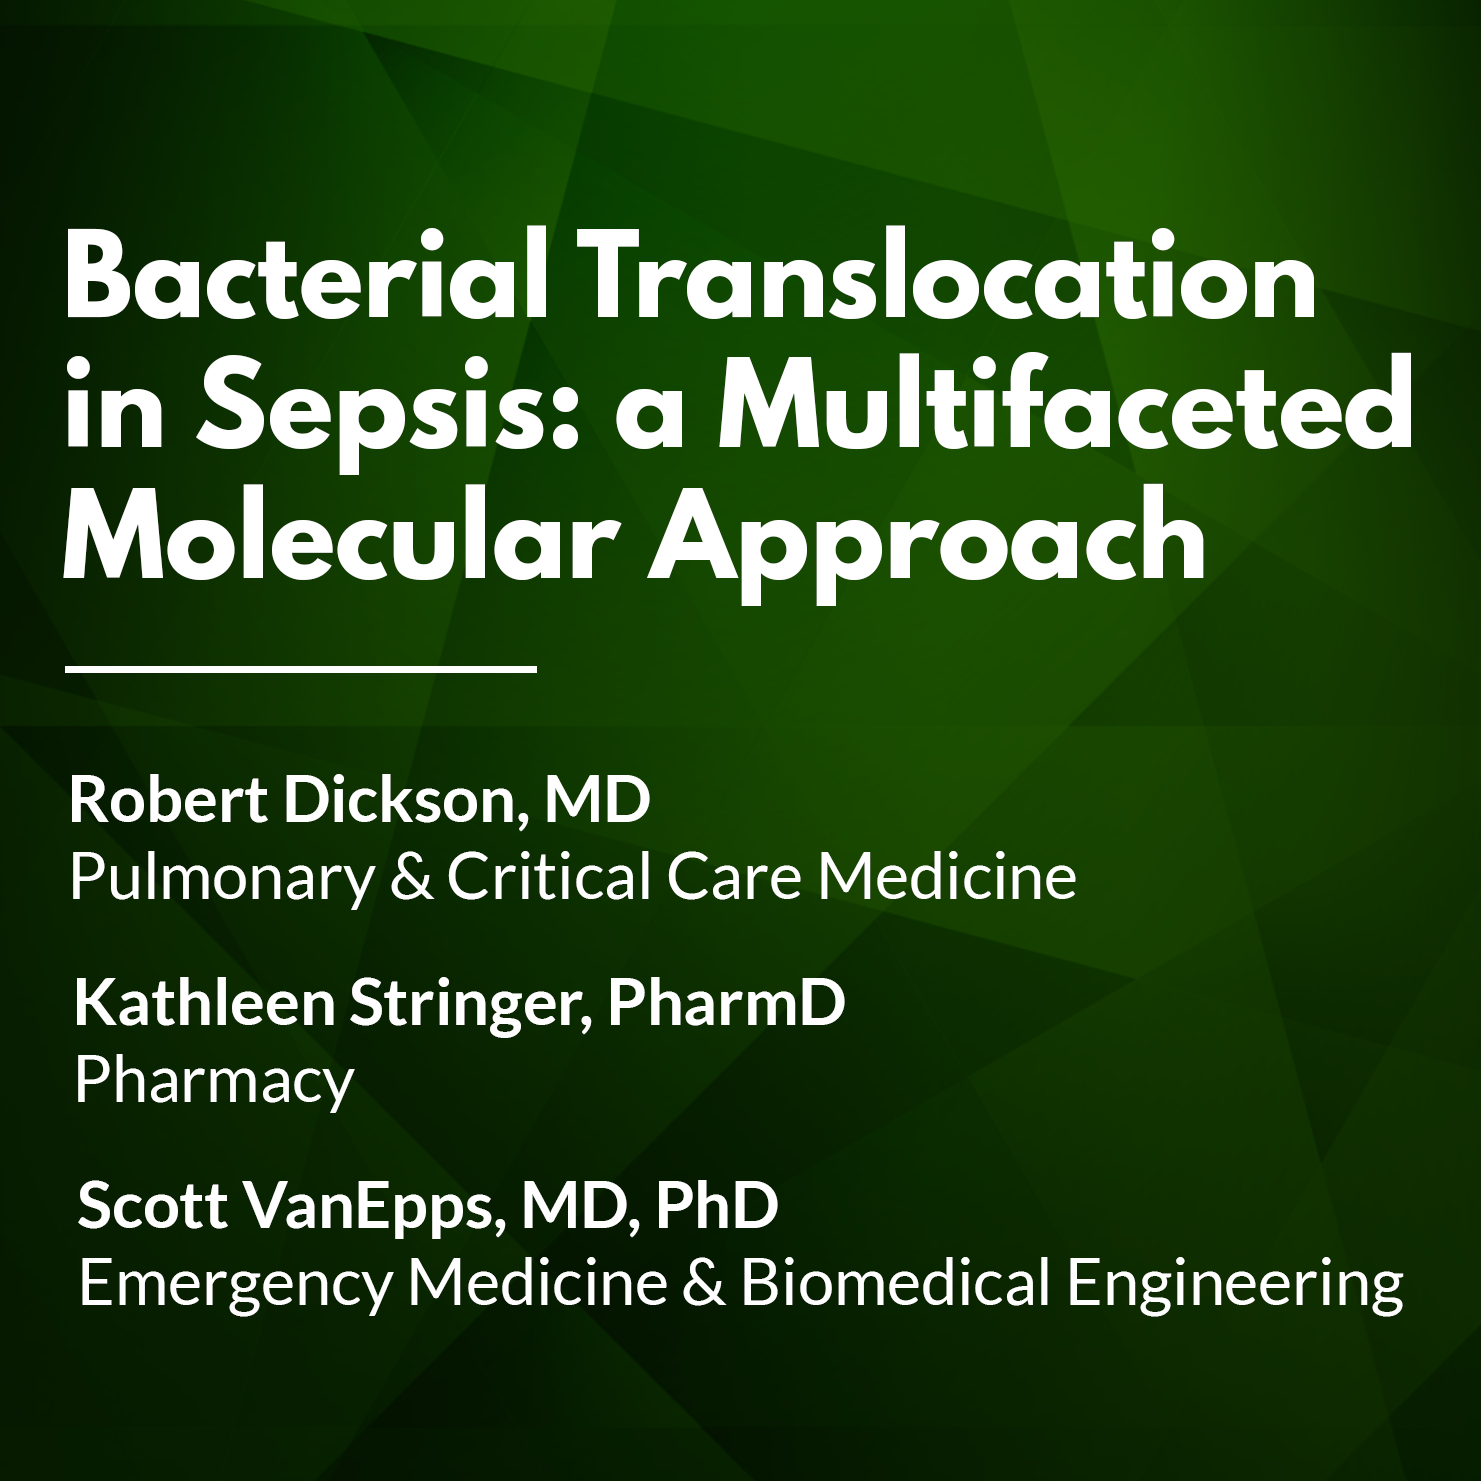 Research Thumbnail - Bacterial translocation in sepsis - a multifaceted molecular approach.png